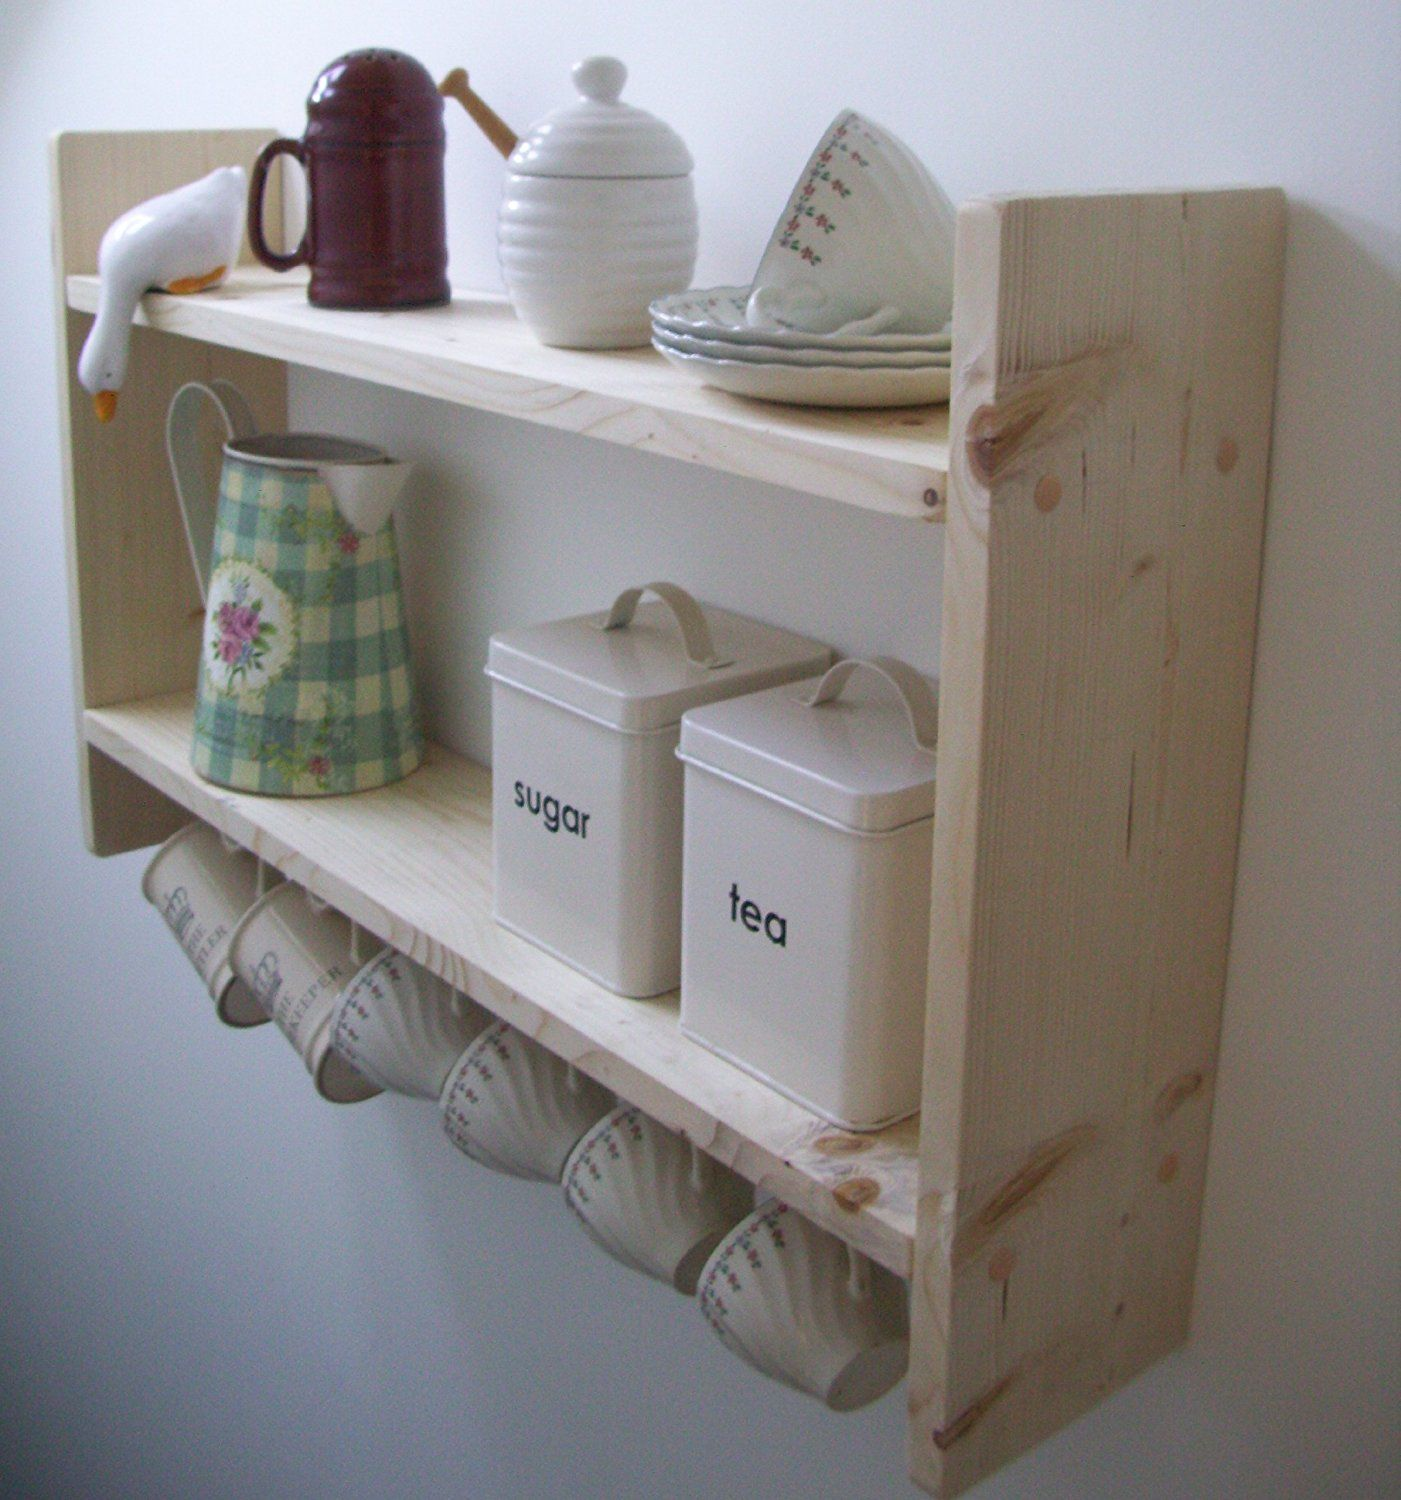 Superb Country Pine Shelves With Cup Hooks Spice Rack Kitchen